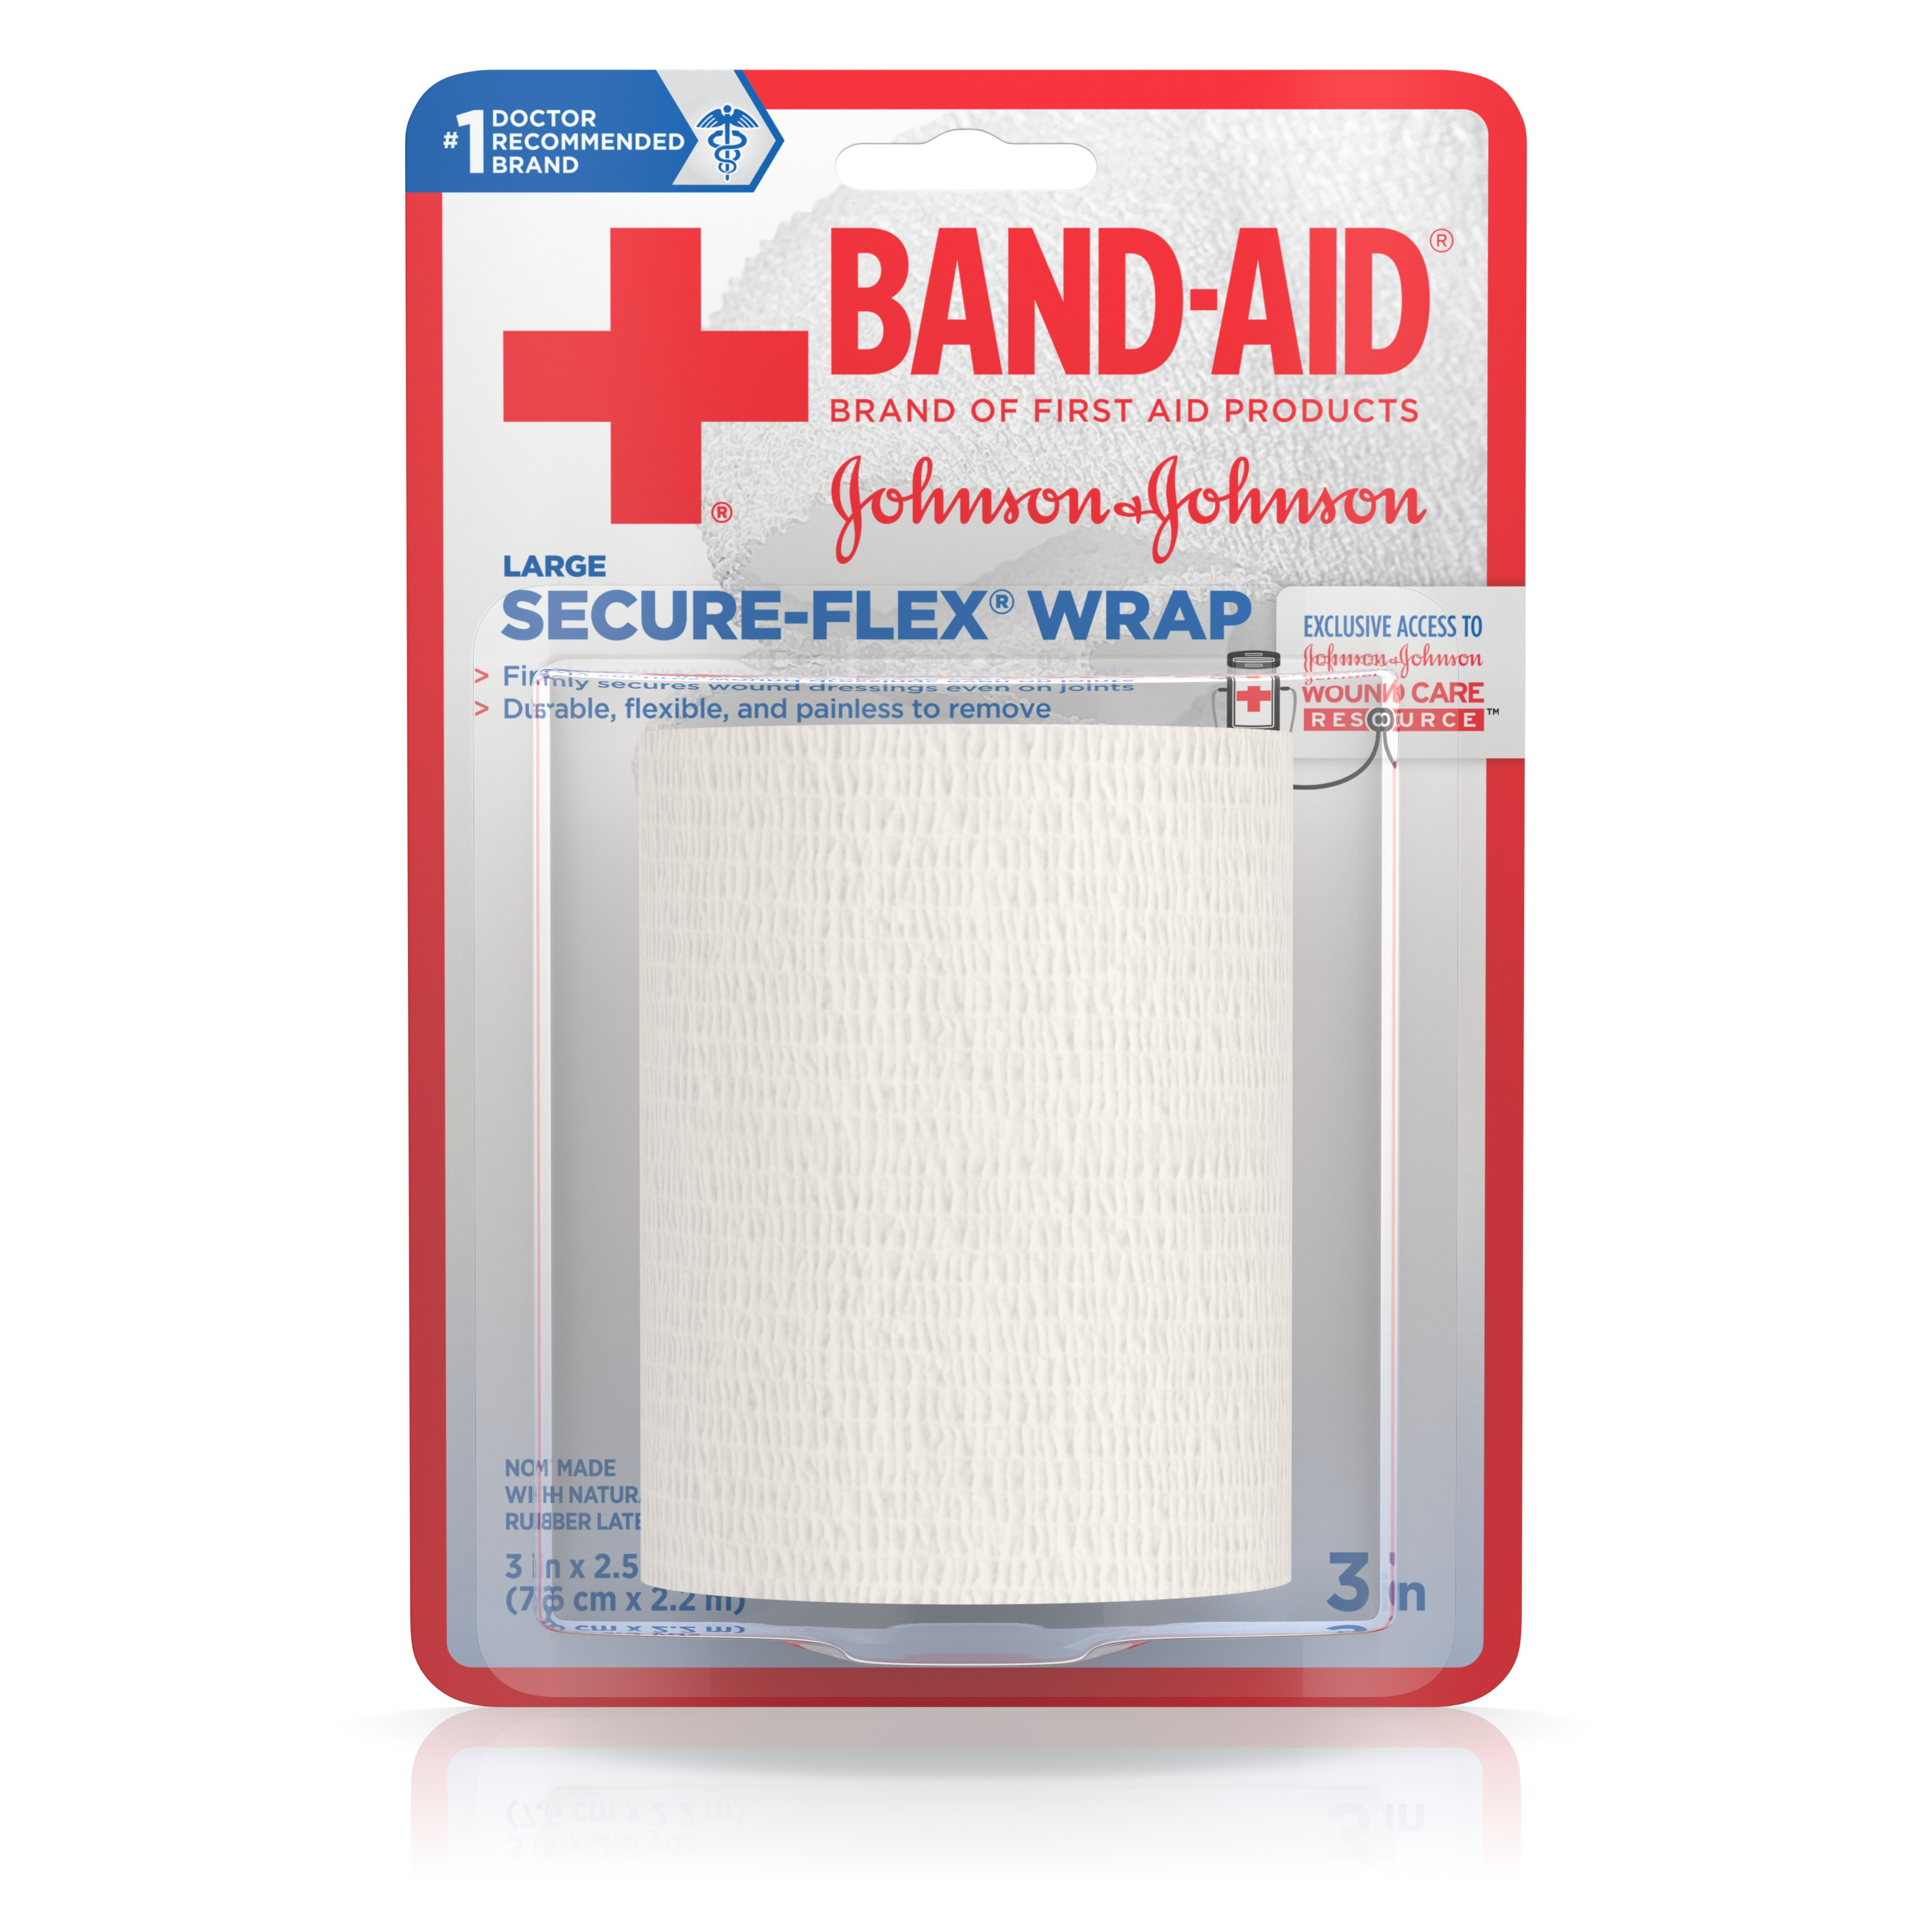 BAND-AID Brand of First Aid Products Durable SECURE-FLEX Wrap, 3 Inches by 2.5 Yards by Johnson & Johnson Consumer Products Company